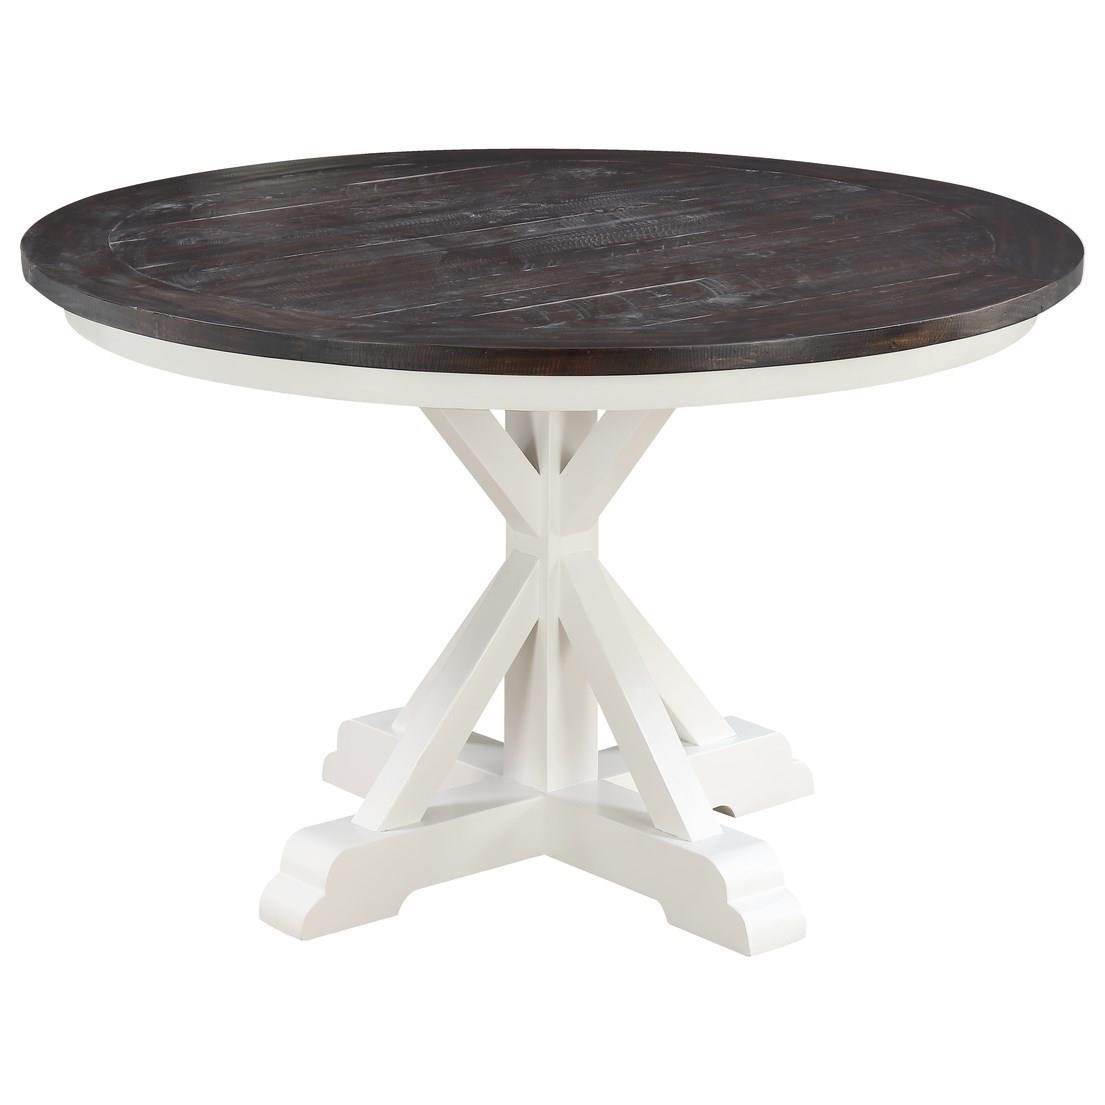 """Mountain Retreat 54"""" Round Dining Table by Emerald at Northeast Factory Direct"""